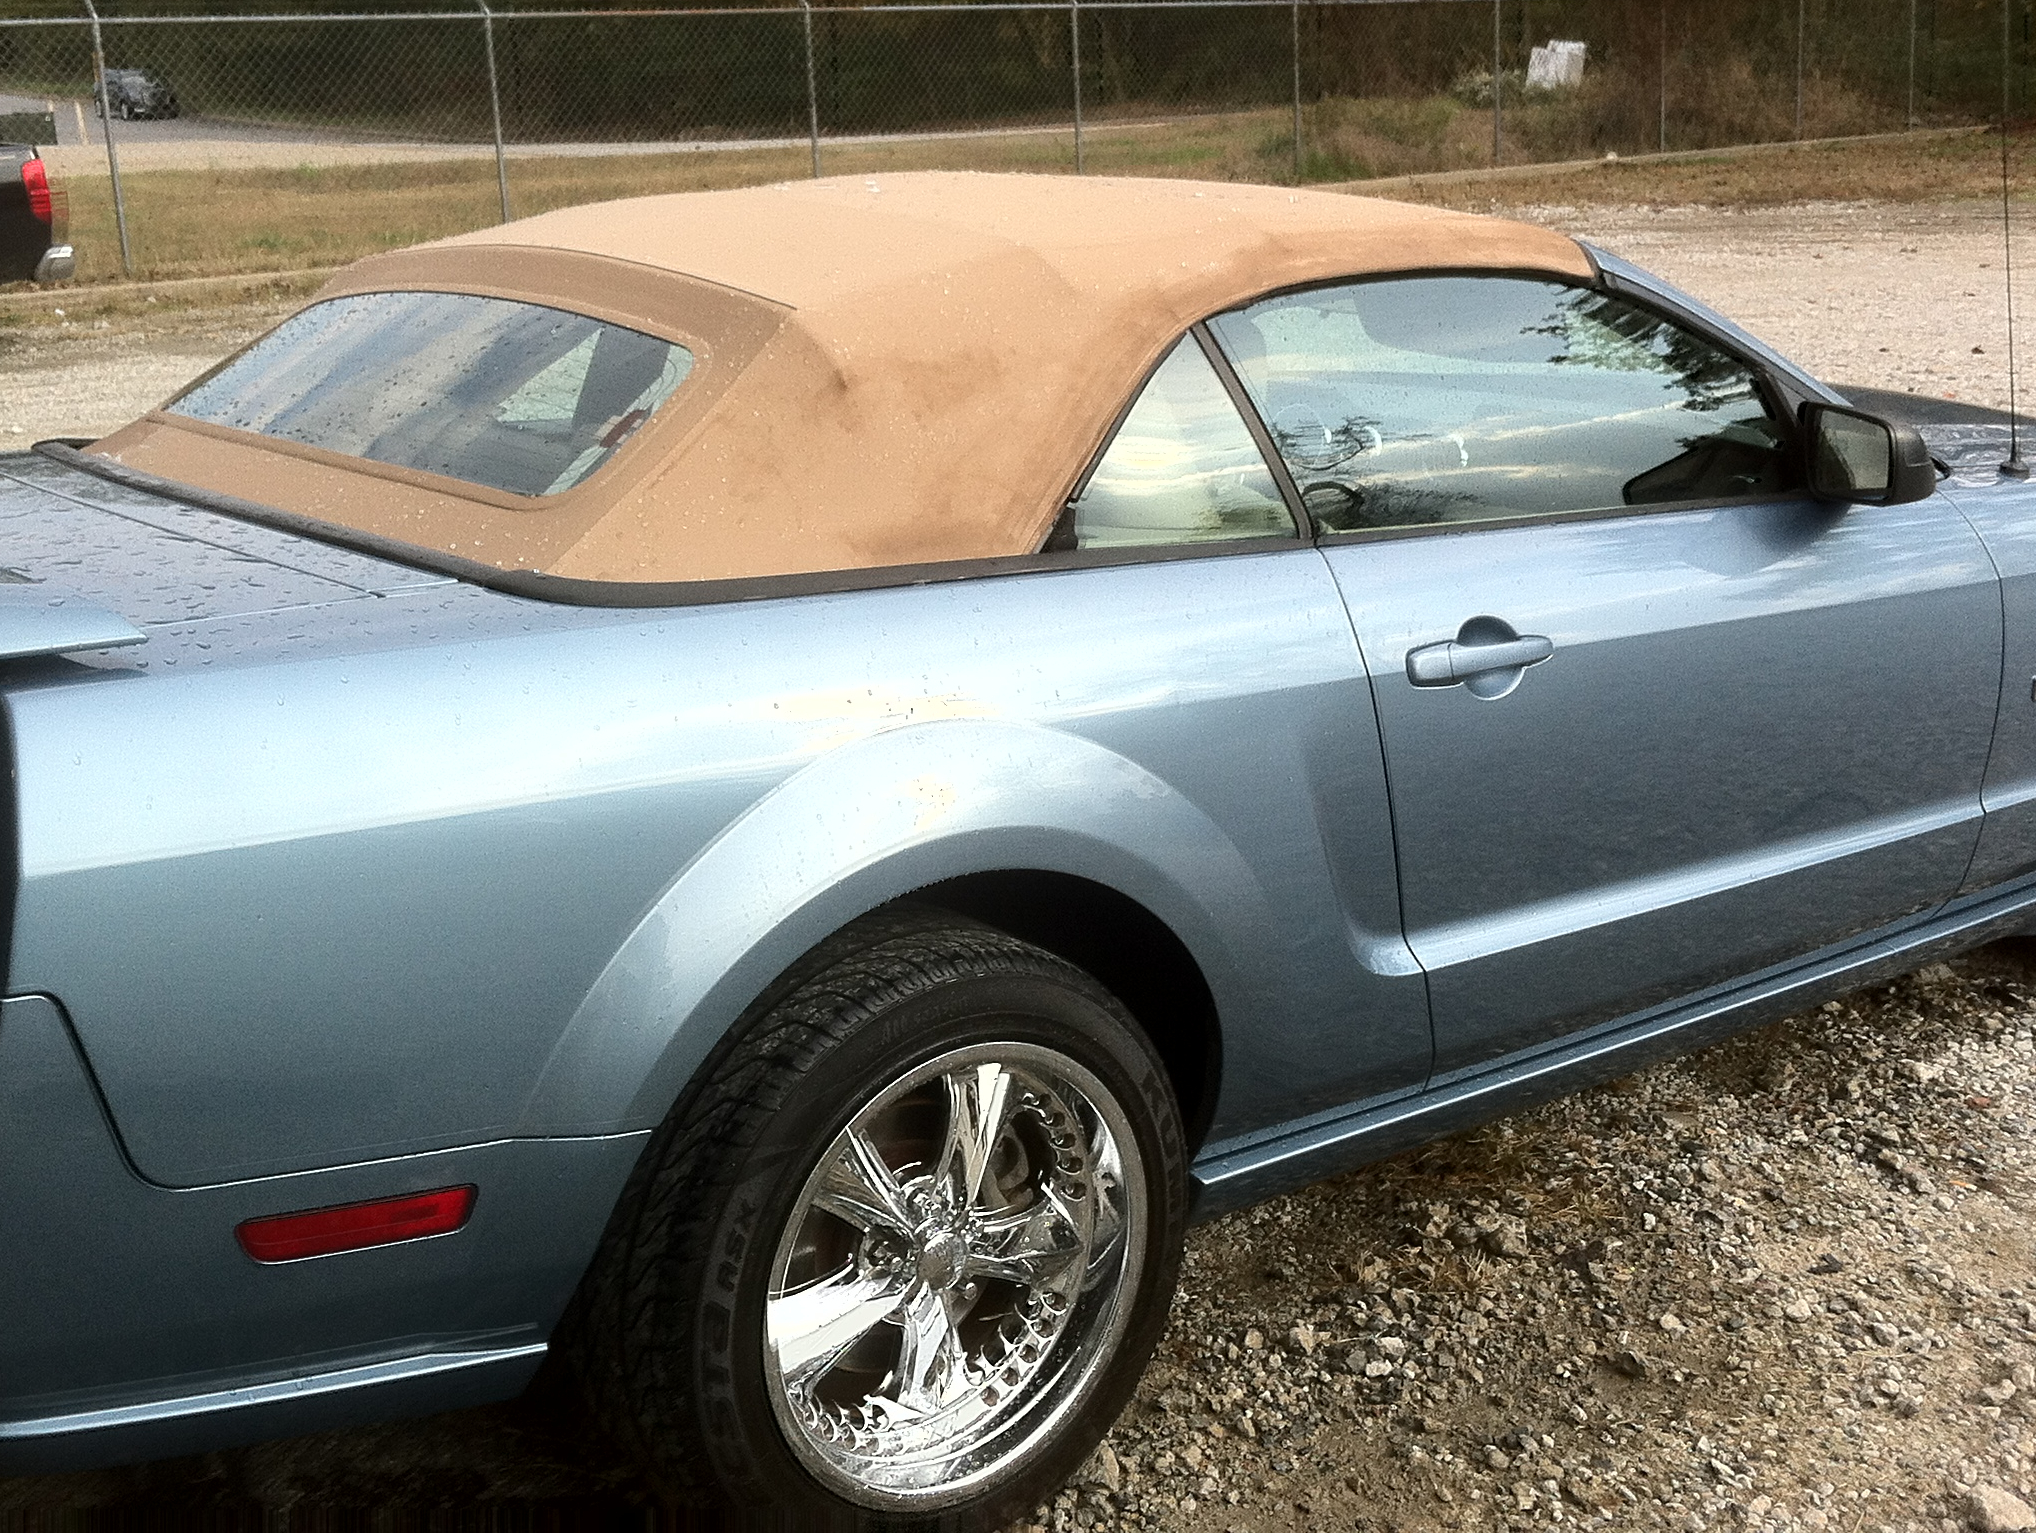 Convertible Top Repair